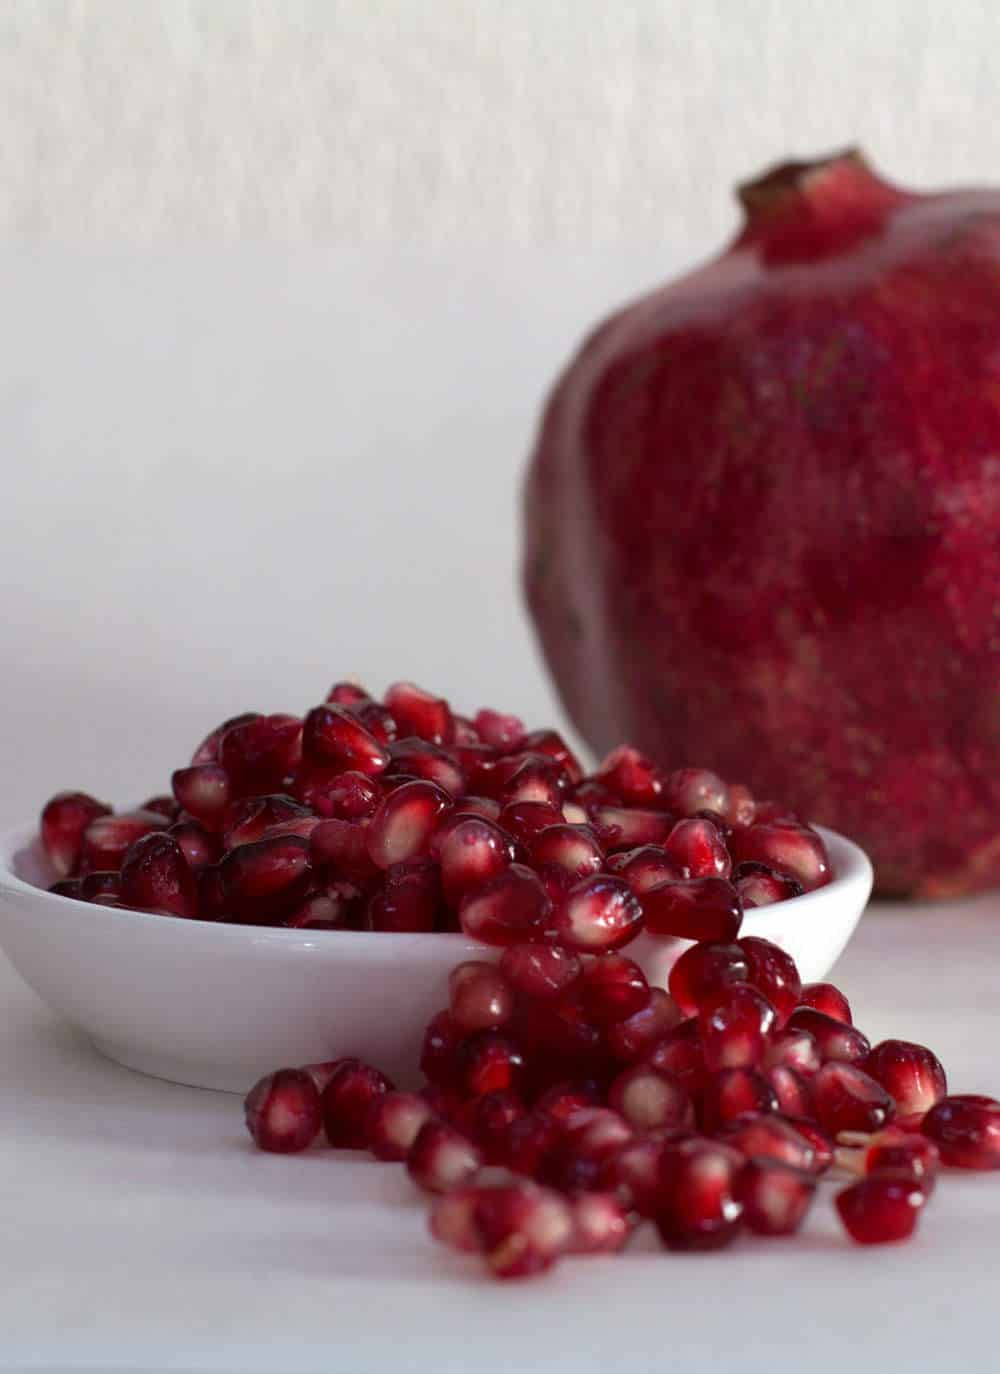 Best way to juice a pomegranate by hand. Let Mother Would Know show you how, with video and text tips.